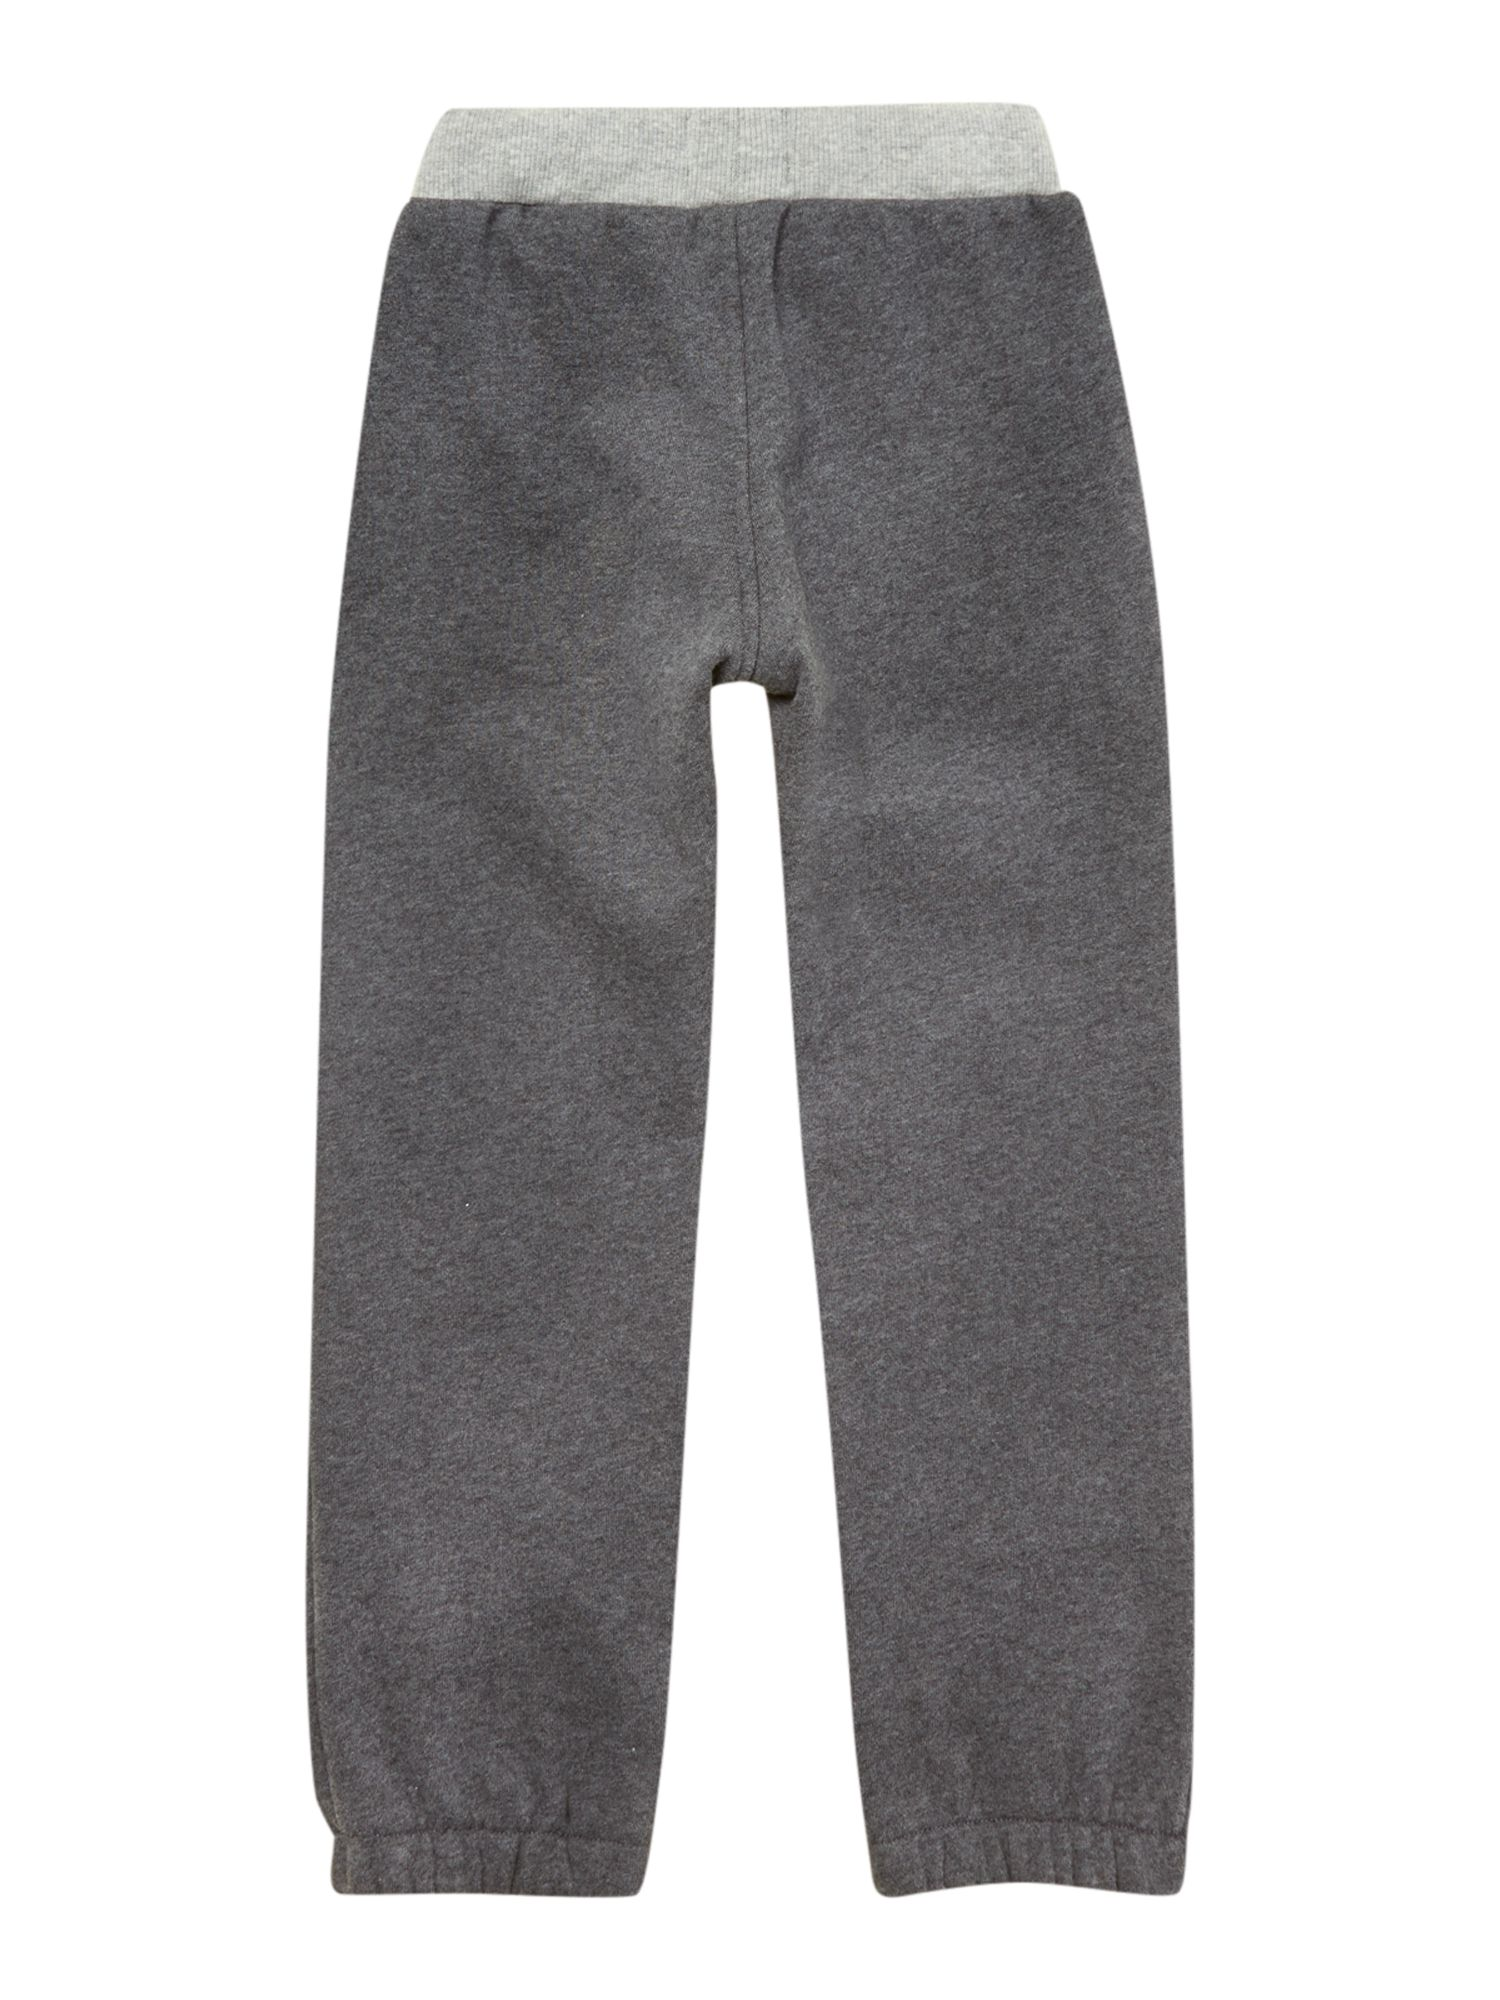 Boys fleece jogging bottoms